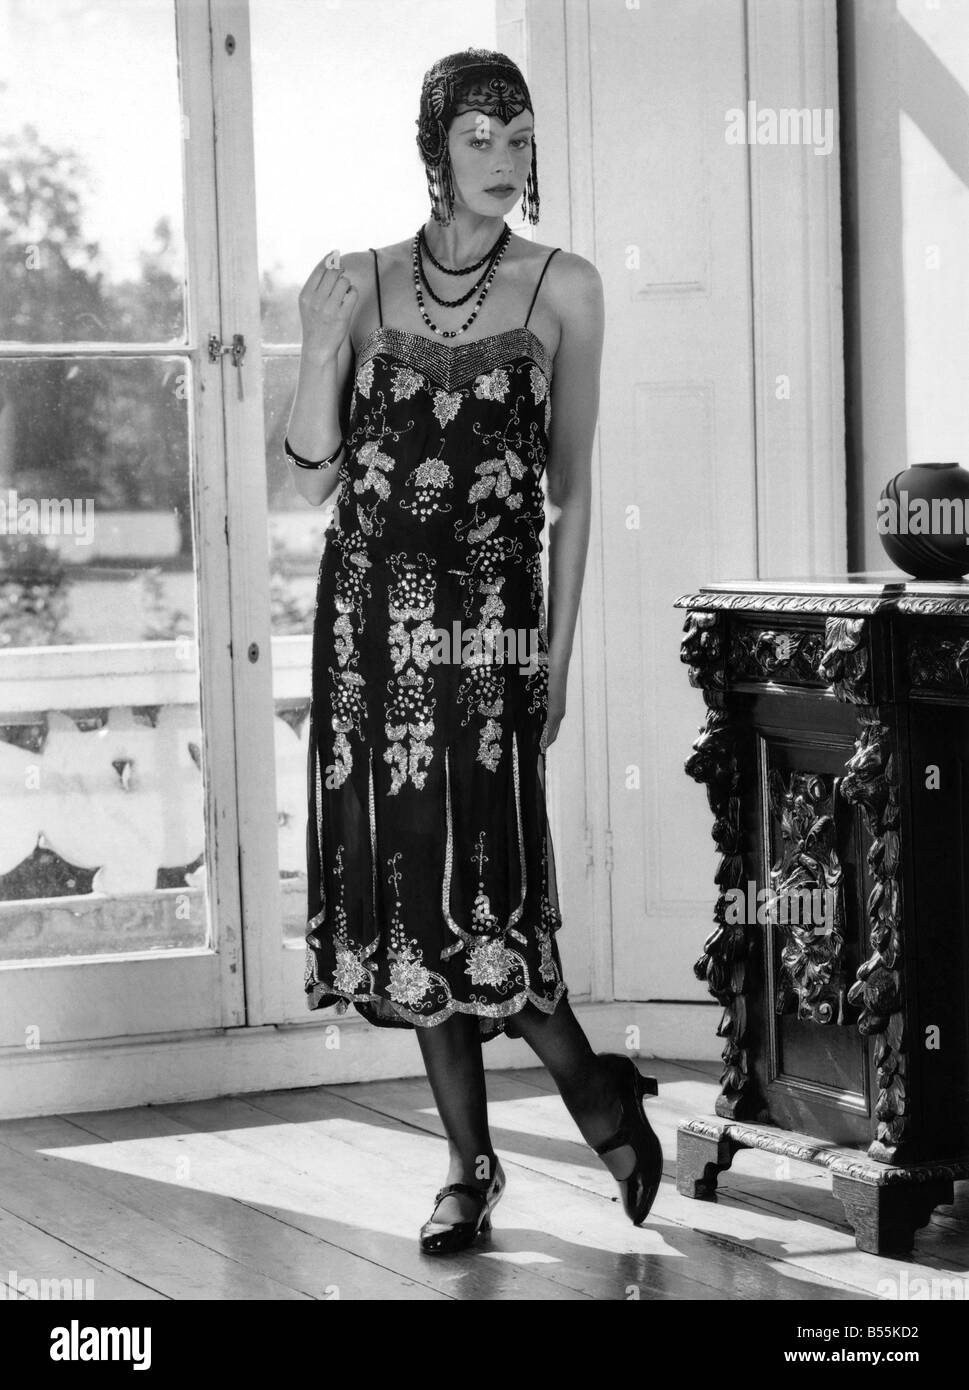 36481ecf8bfd8 Fashions 1920's: Beaded flapper dress and skull cap with neat T-bar shoes.